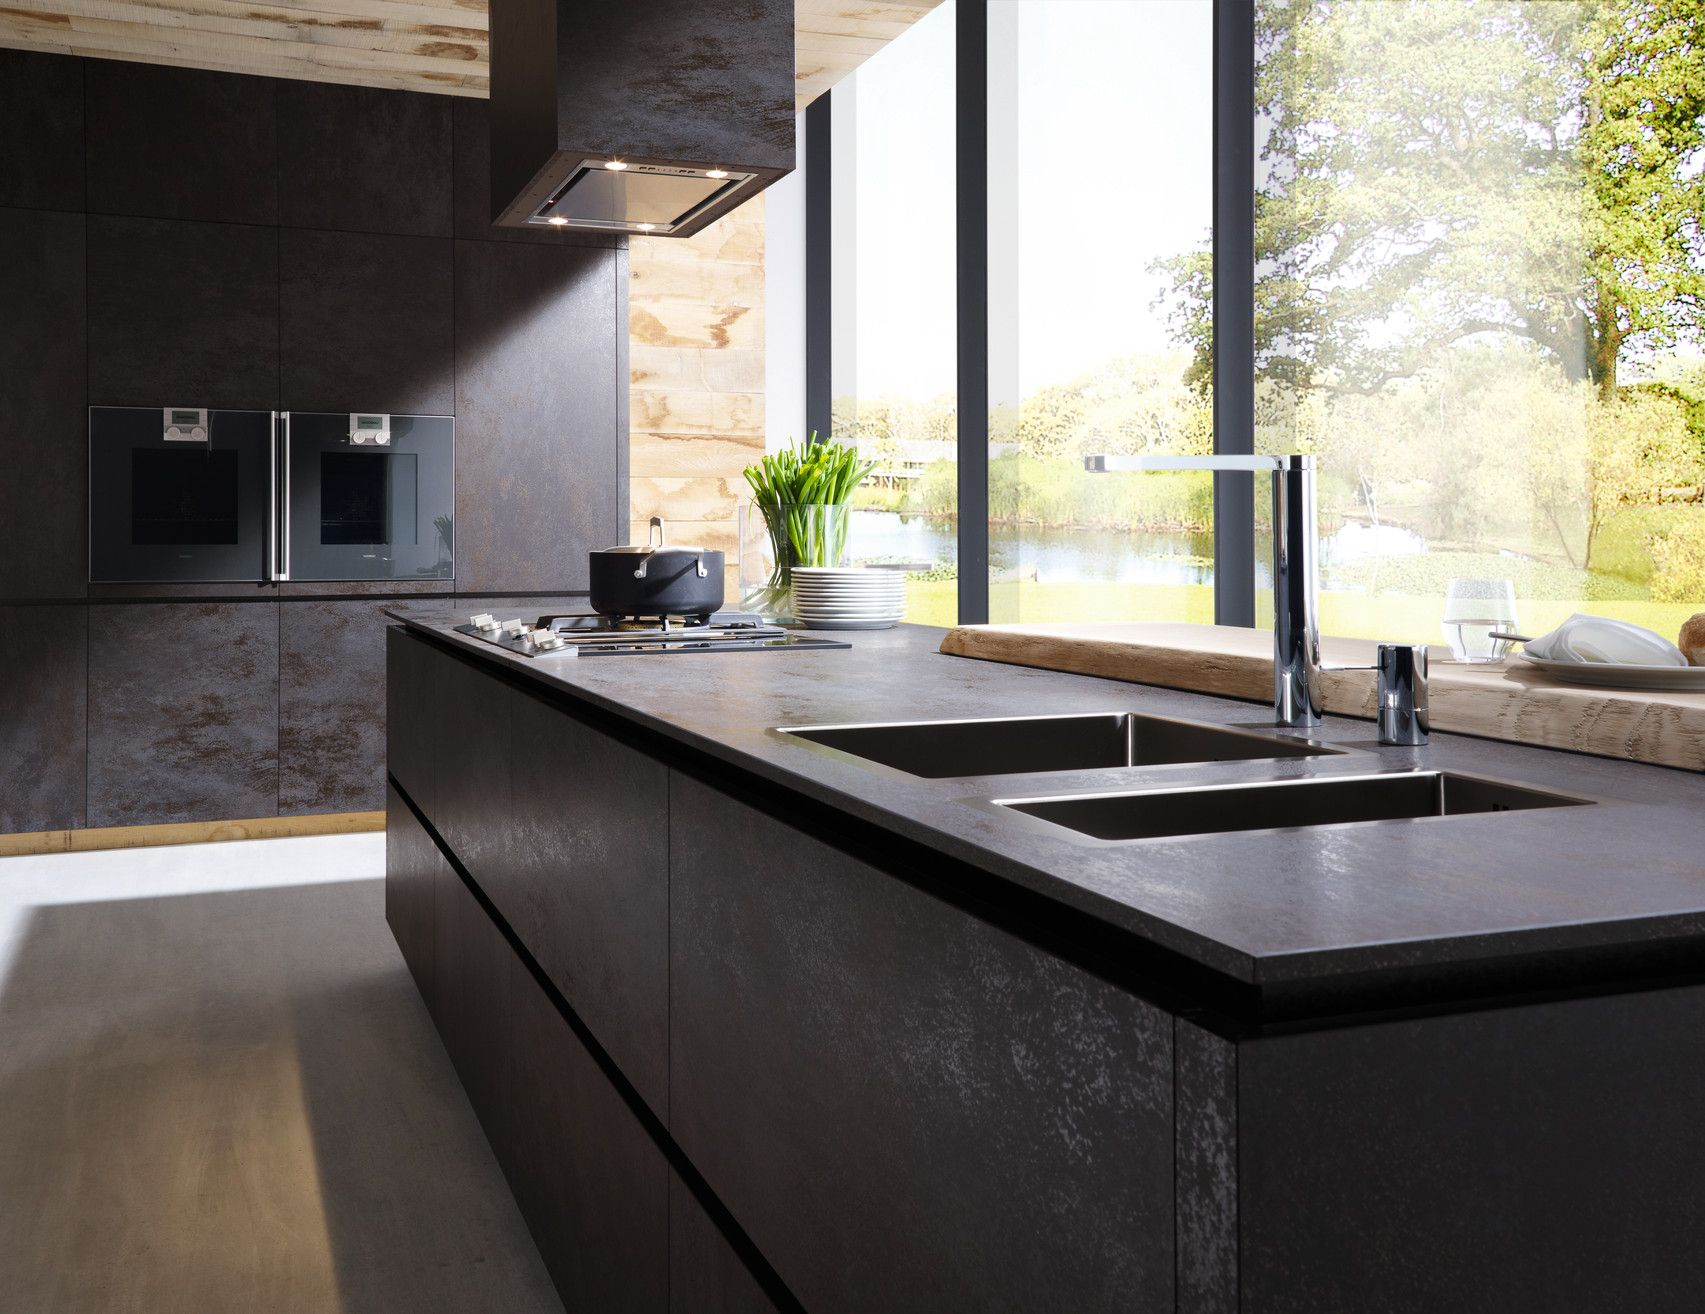 About alno modern kitchens on pinterest modern kitchen cabinets - Alno Ceramic Front Kitchen Have Seen This In Real Just Stunning